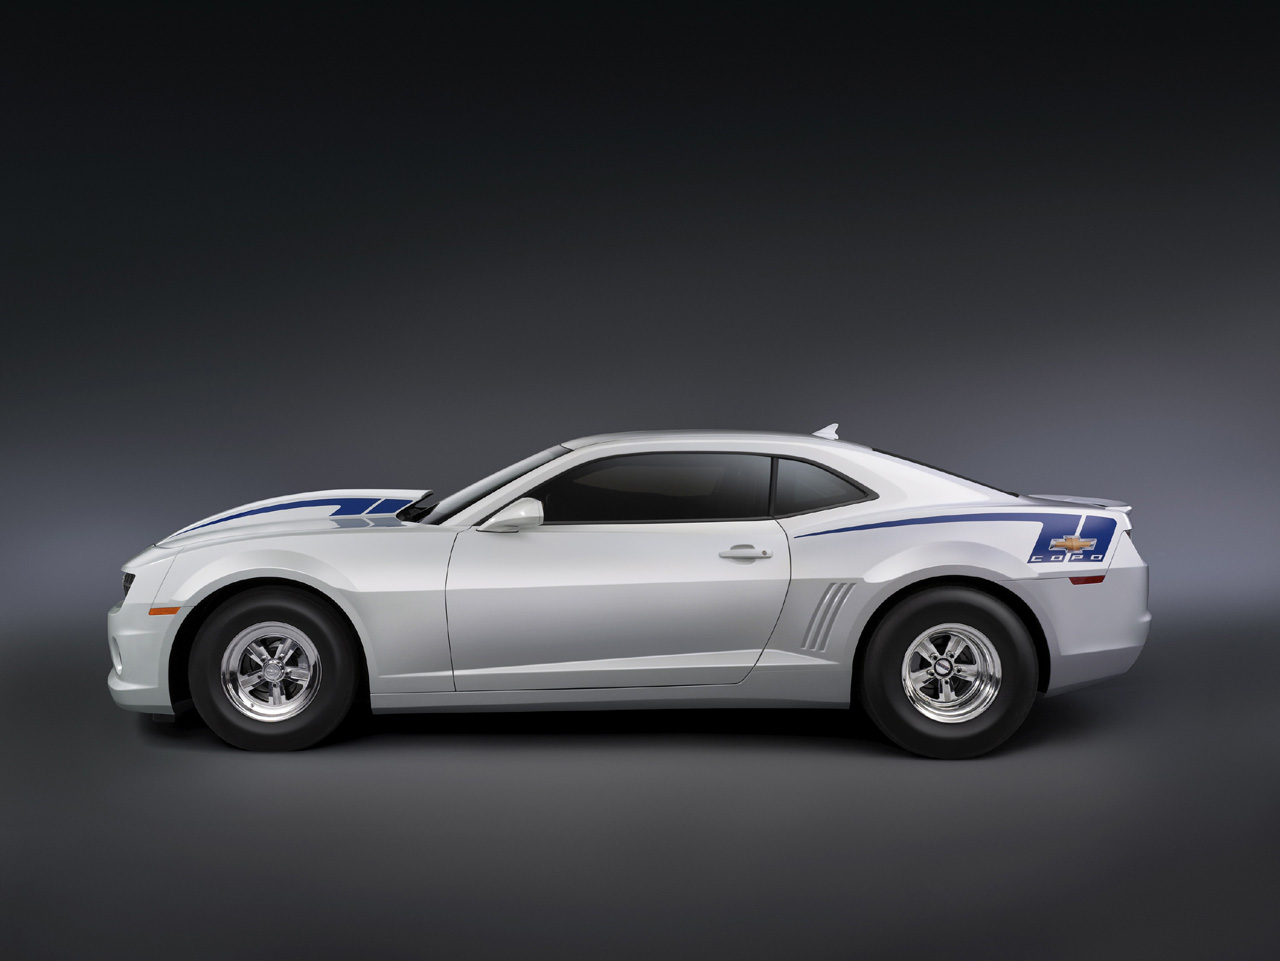 Chevy will build 69 COPO Camaro drag racers - Autoblog